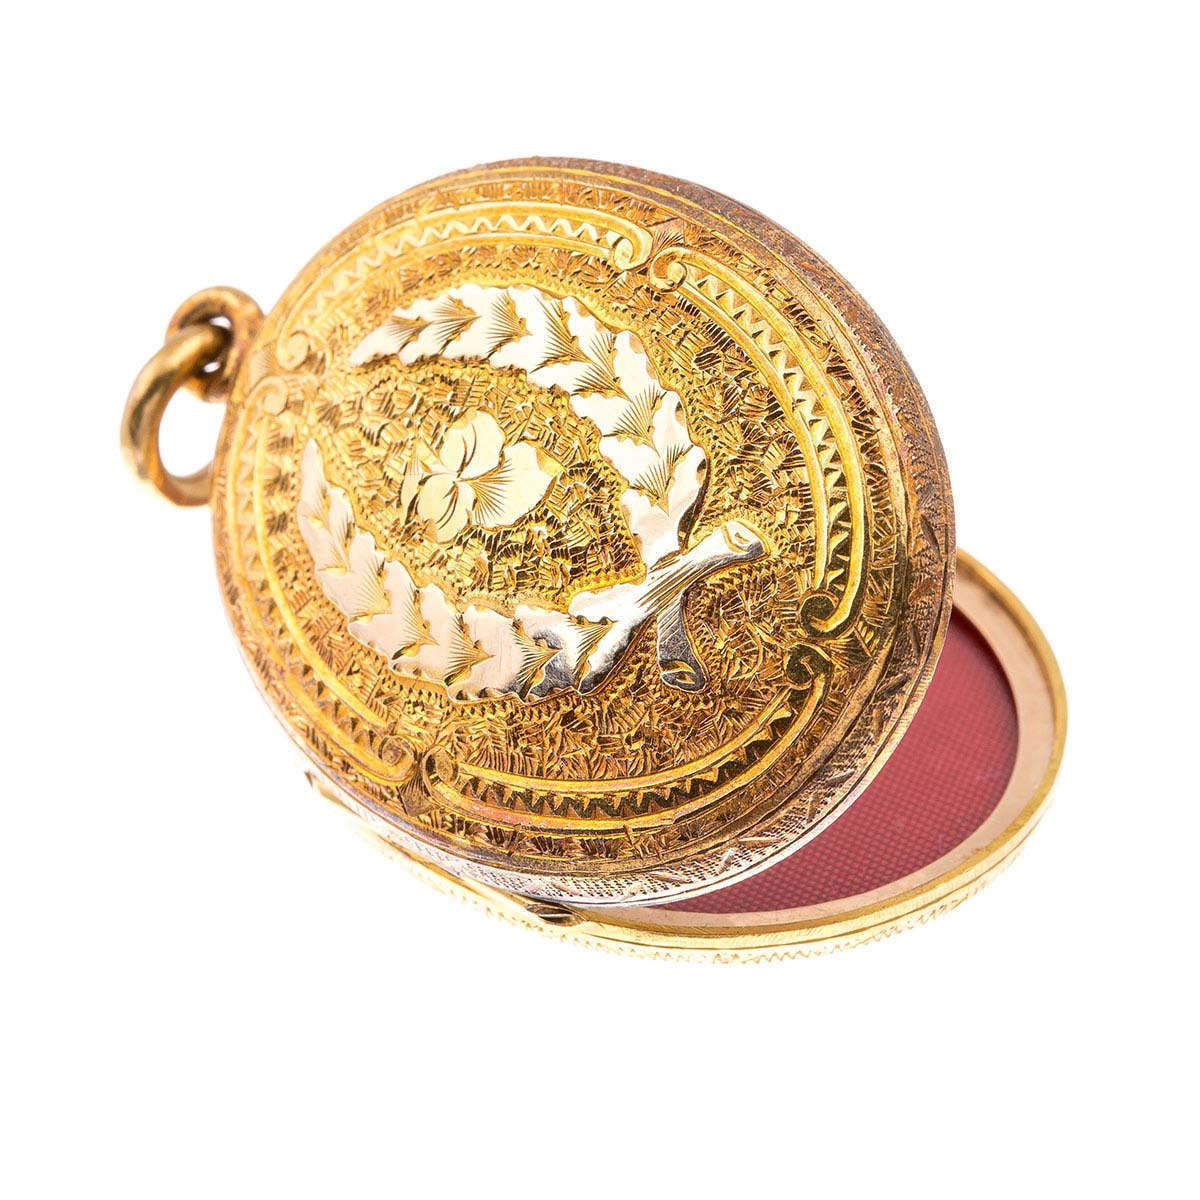 Antique Victorian 18ct gold locket